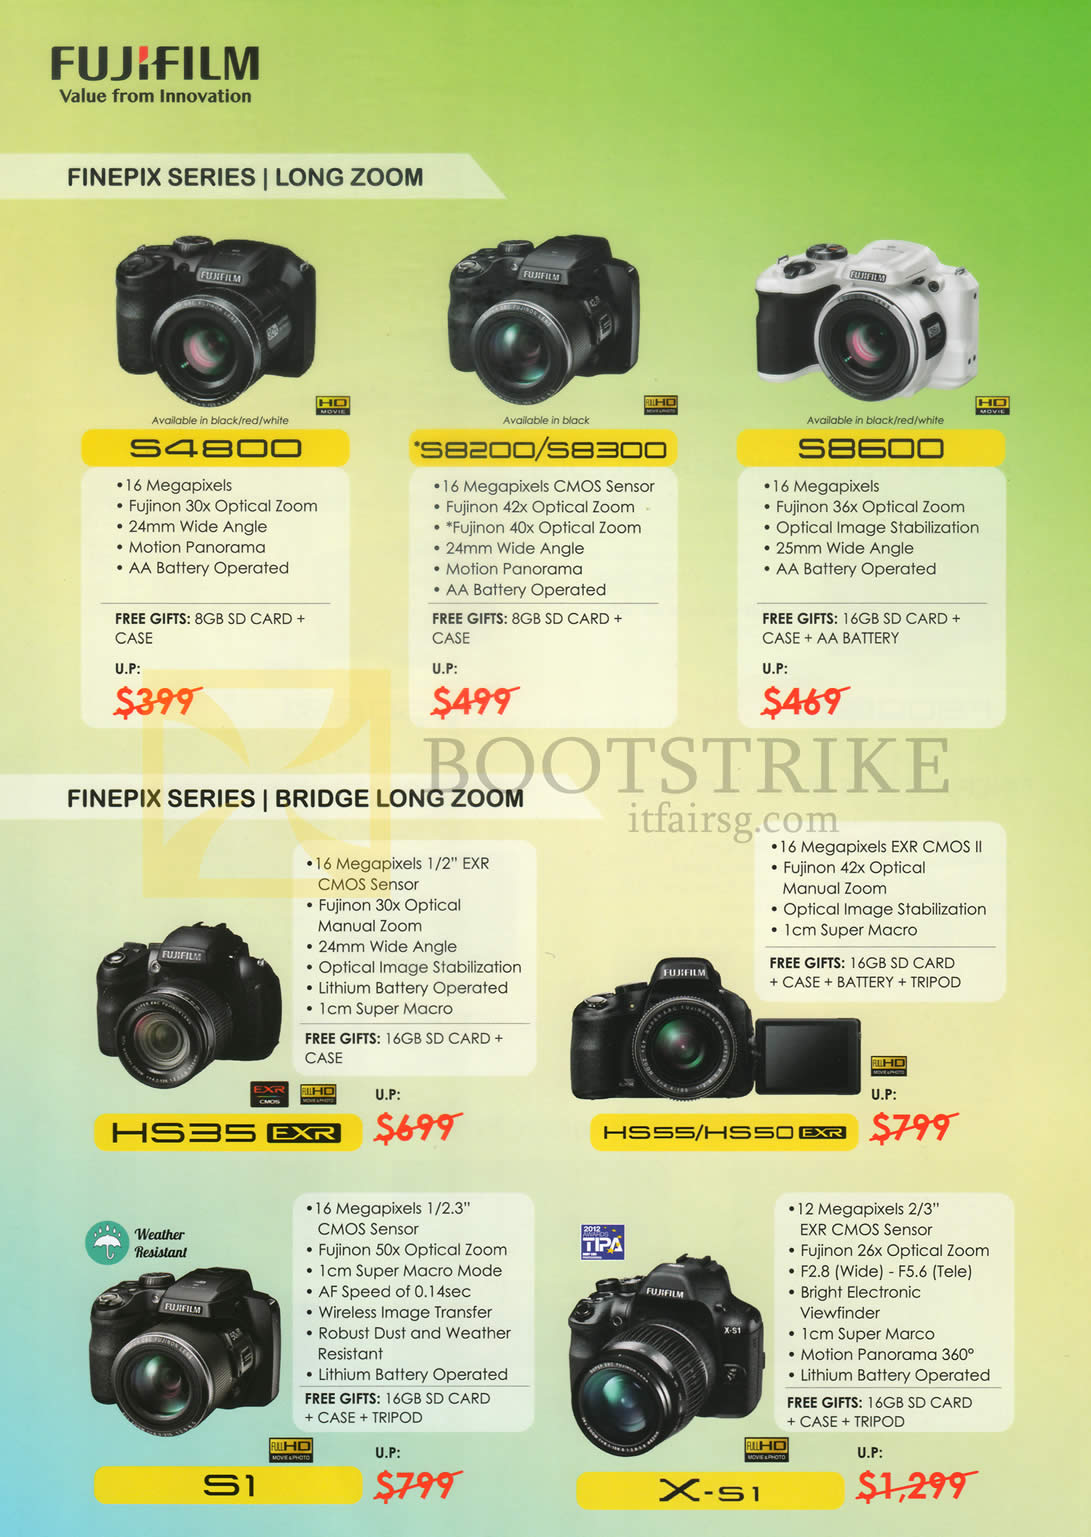 IT SHOW 2015 price list image brochure of Fujifilm (No Prices) Digital Cameras Finepix S4800, S8200, S8300, HS35, HS55, HS50, S1, X-S1